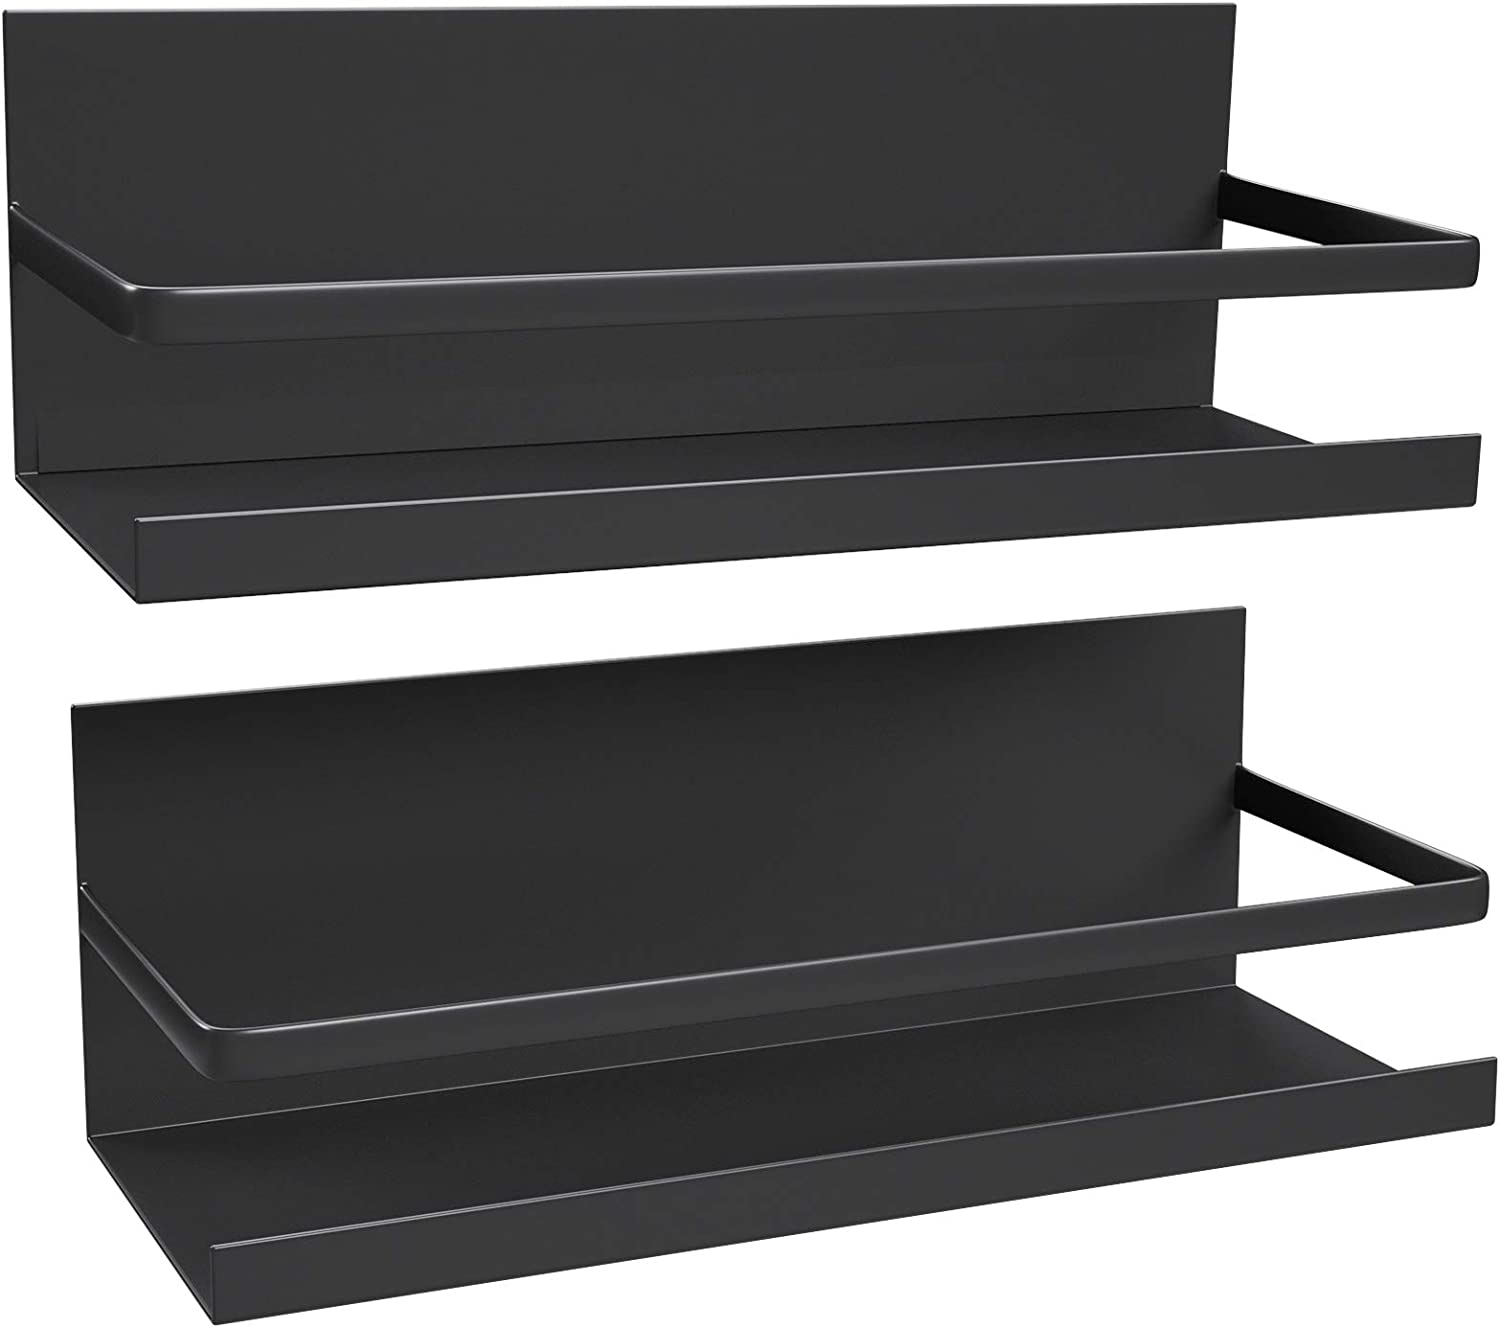 Amazon Com 2 Pack Magnetic Shelf For Refrigerator Magnetic Spice Rack Fridge Storage Organizer For Kitchen Spice Rack For Cabinet Space Container For Small Kitchen Apartment Drill Free Black 2 Pack Kitchen Dining